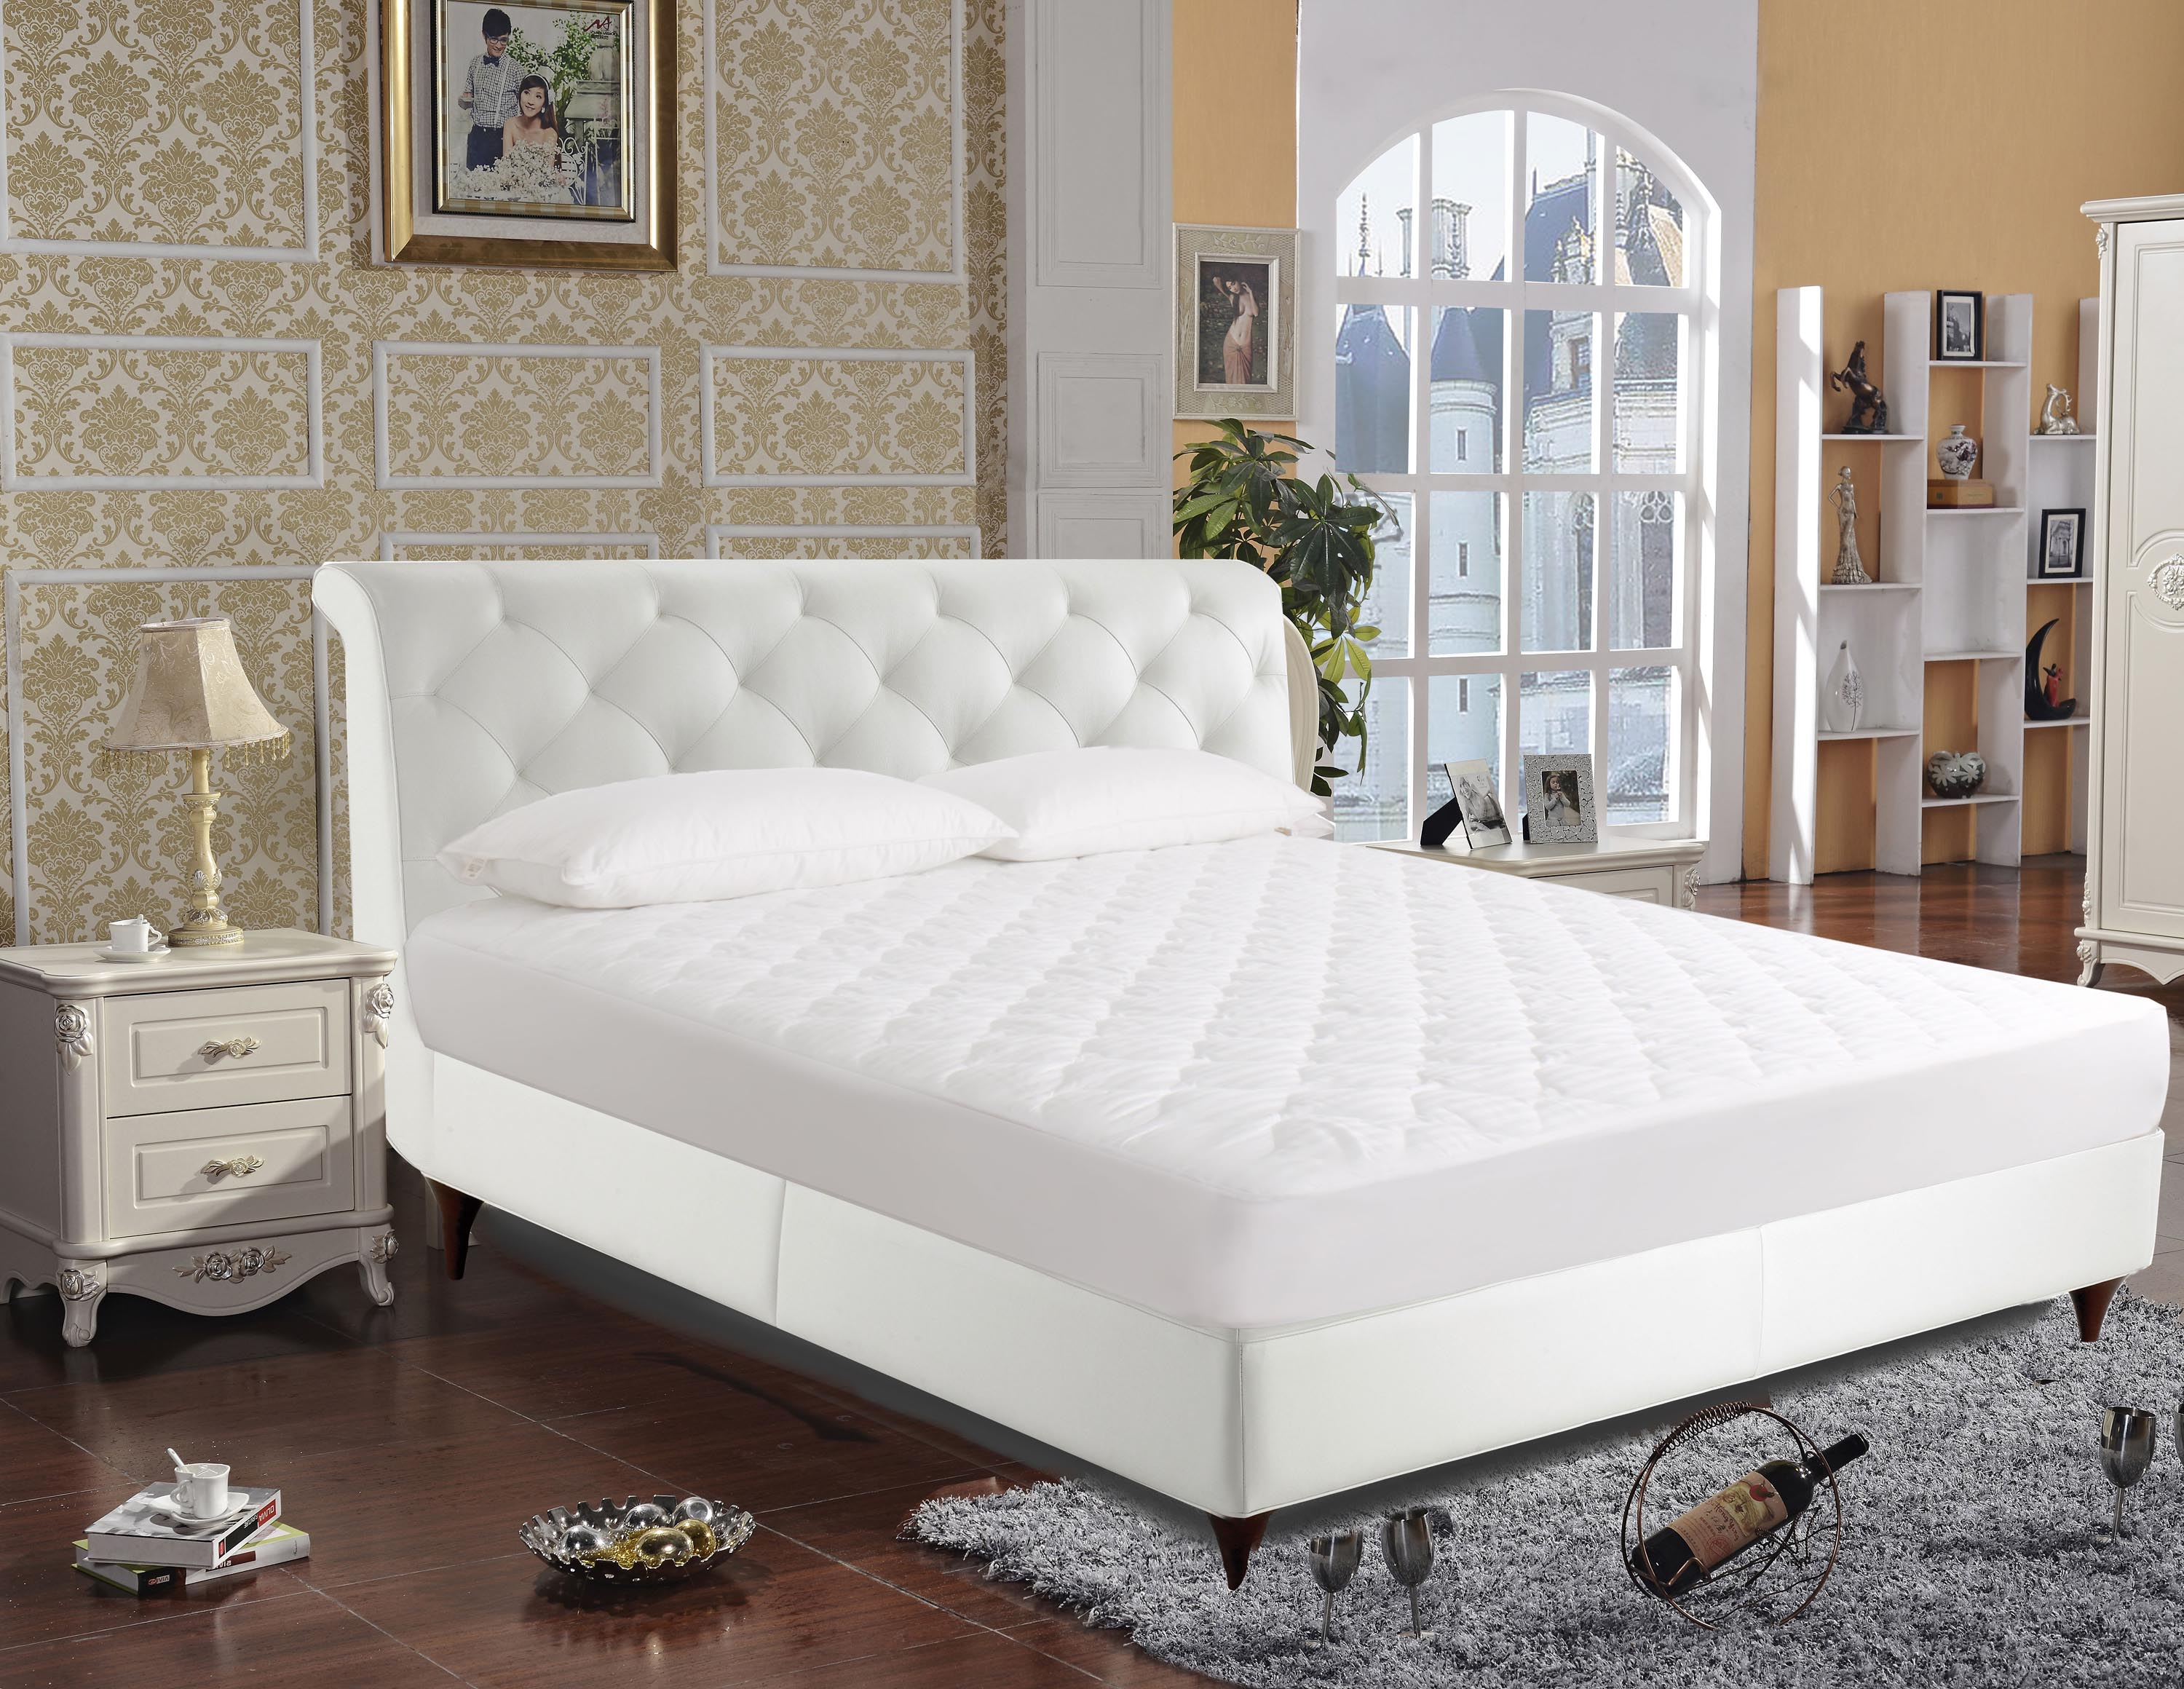 250-Thread Count Luxury Cotton Mattress Pad by Newpoint International Inc